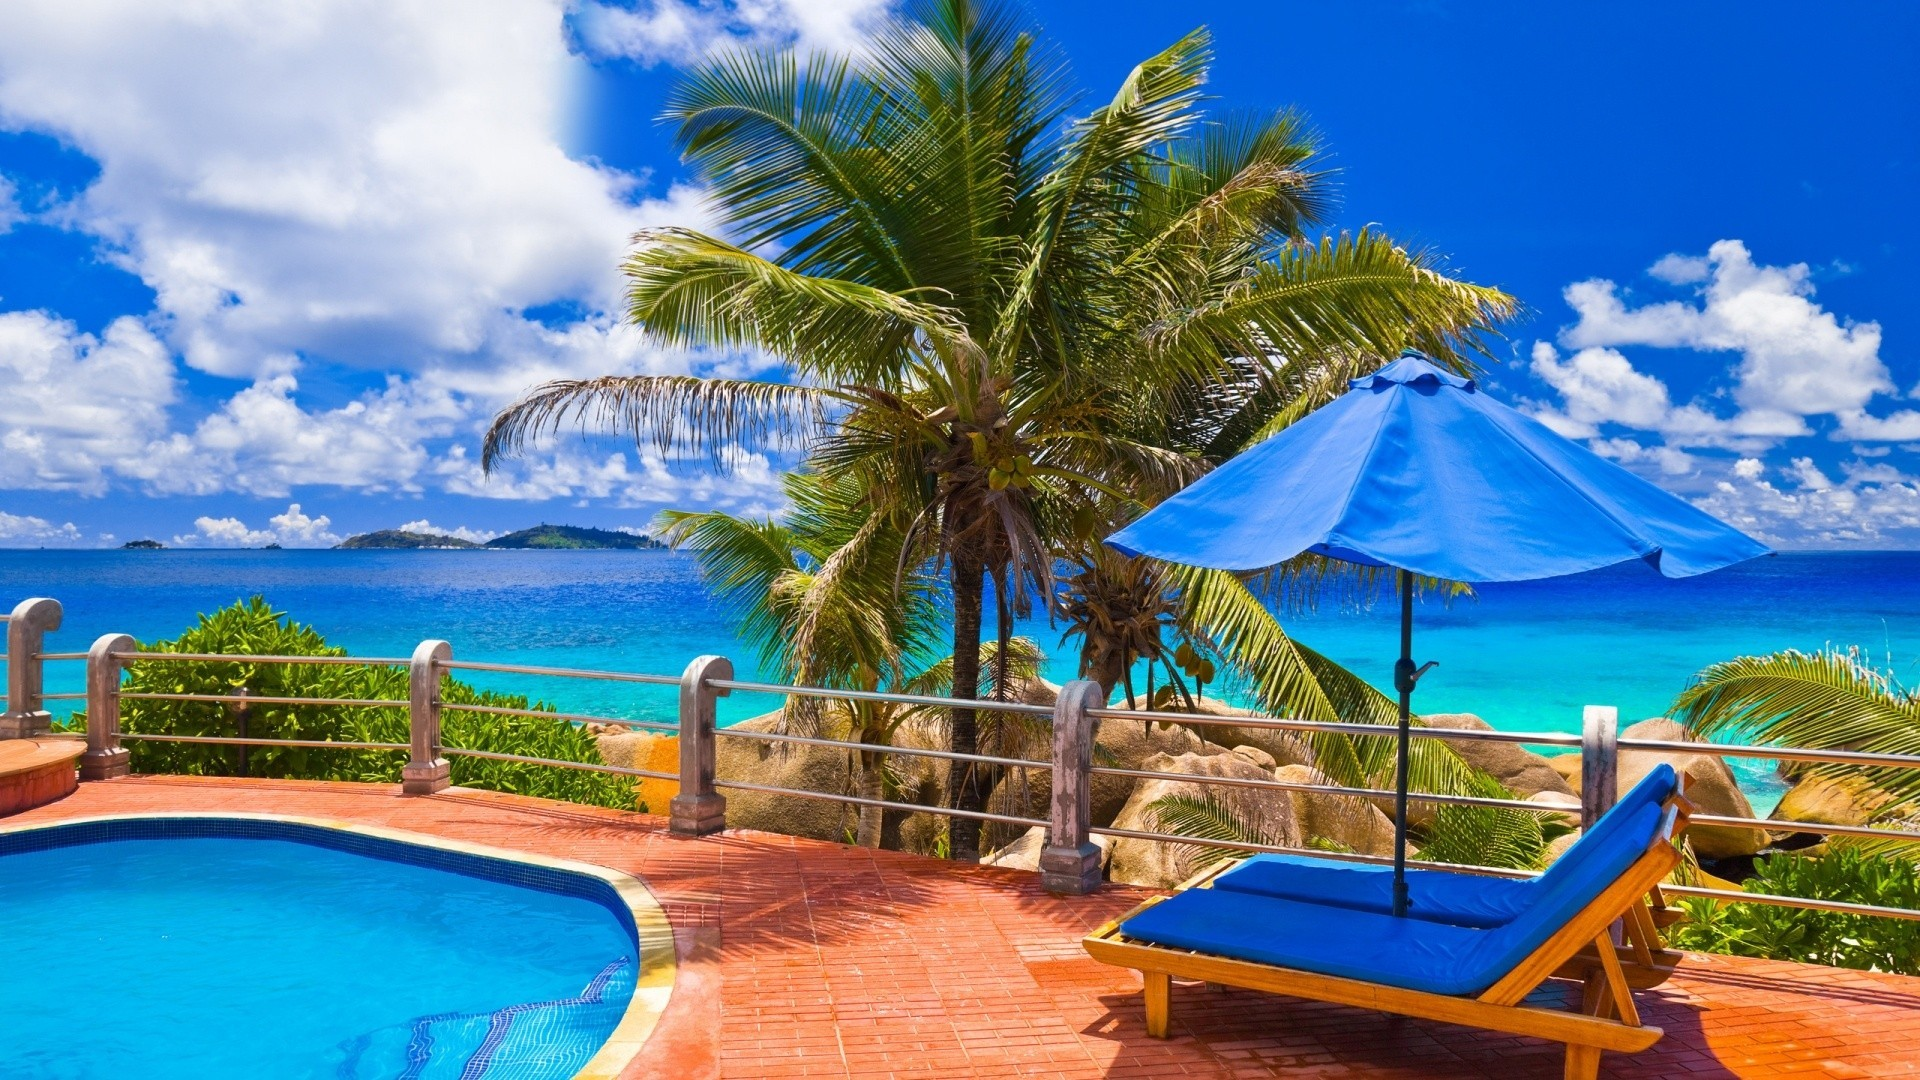 1920x1080 HD El Salvador Wallpapers and Photos HD Travel Wallpapers